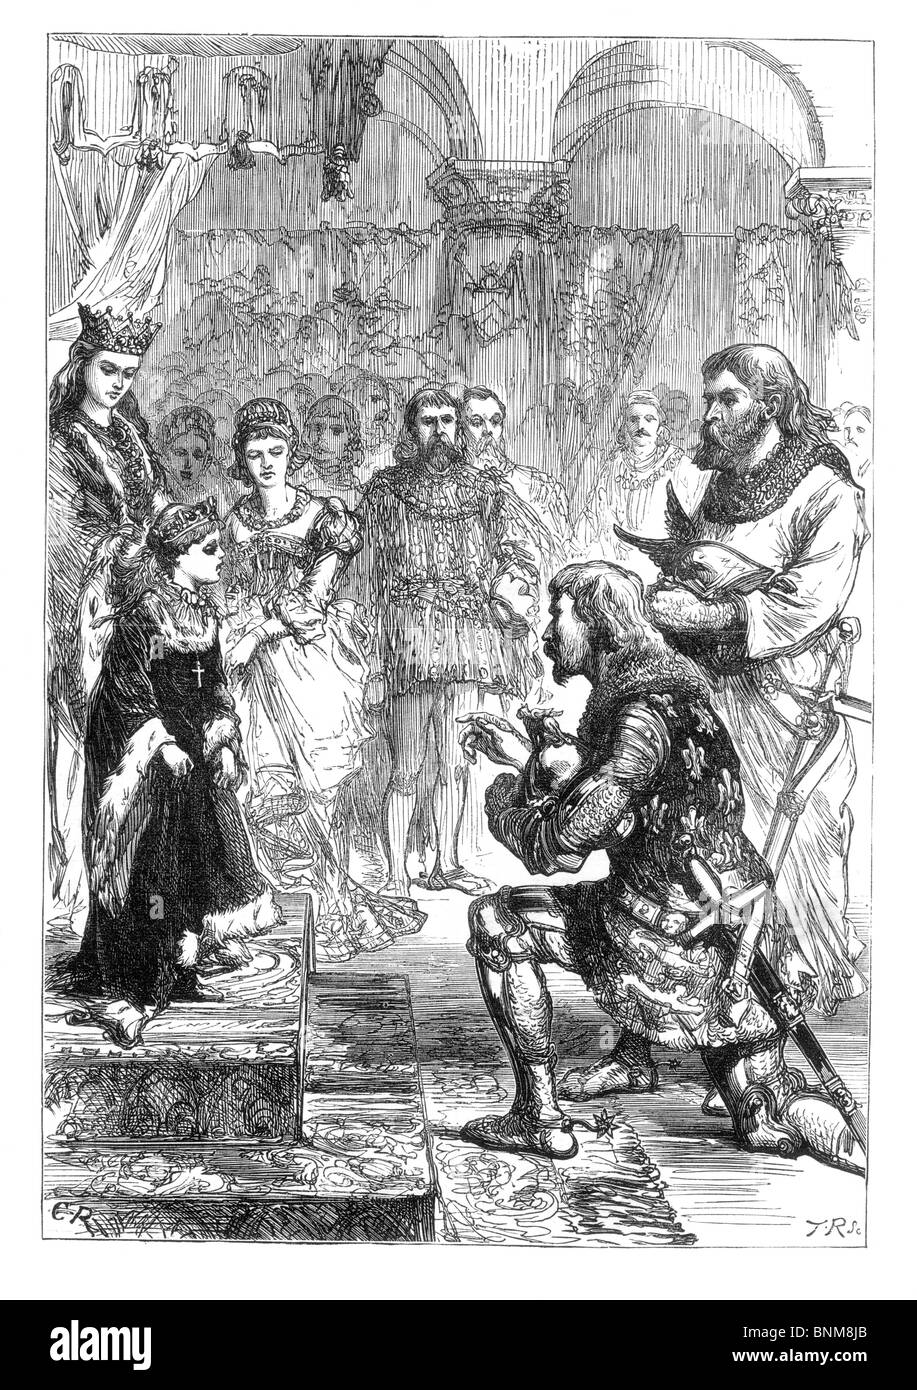 Black and White Illustration of the Betrothal of King Richard II of England to Princess Isabella, daughter of King - Stock Image